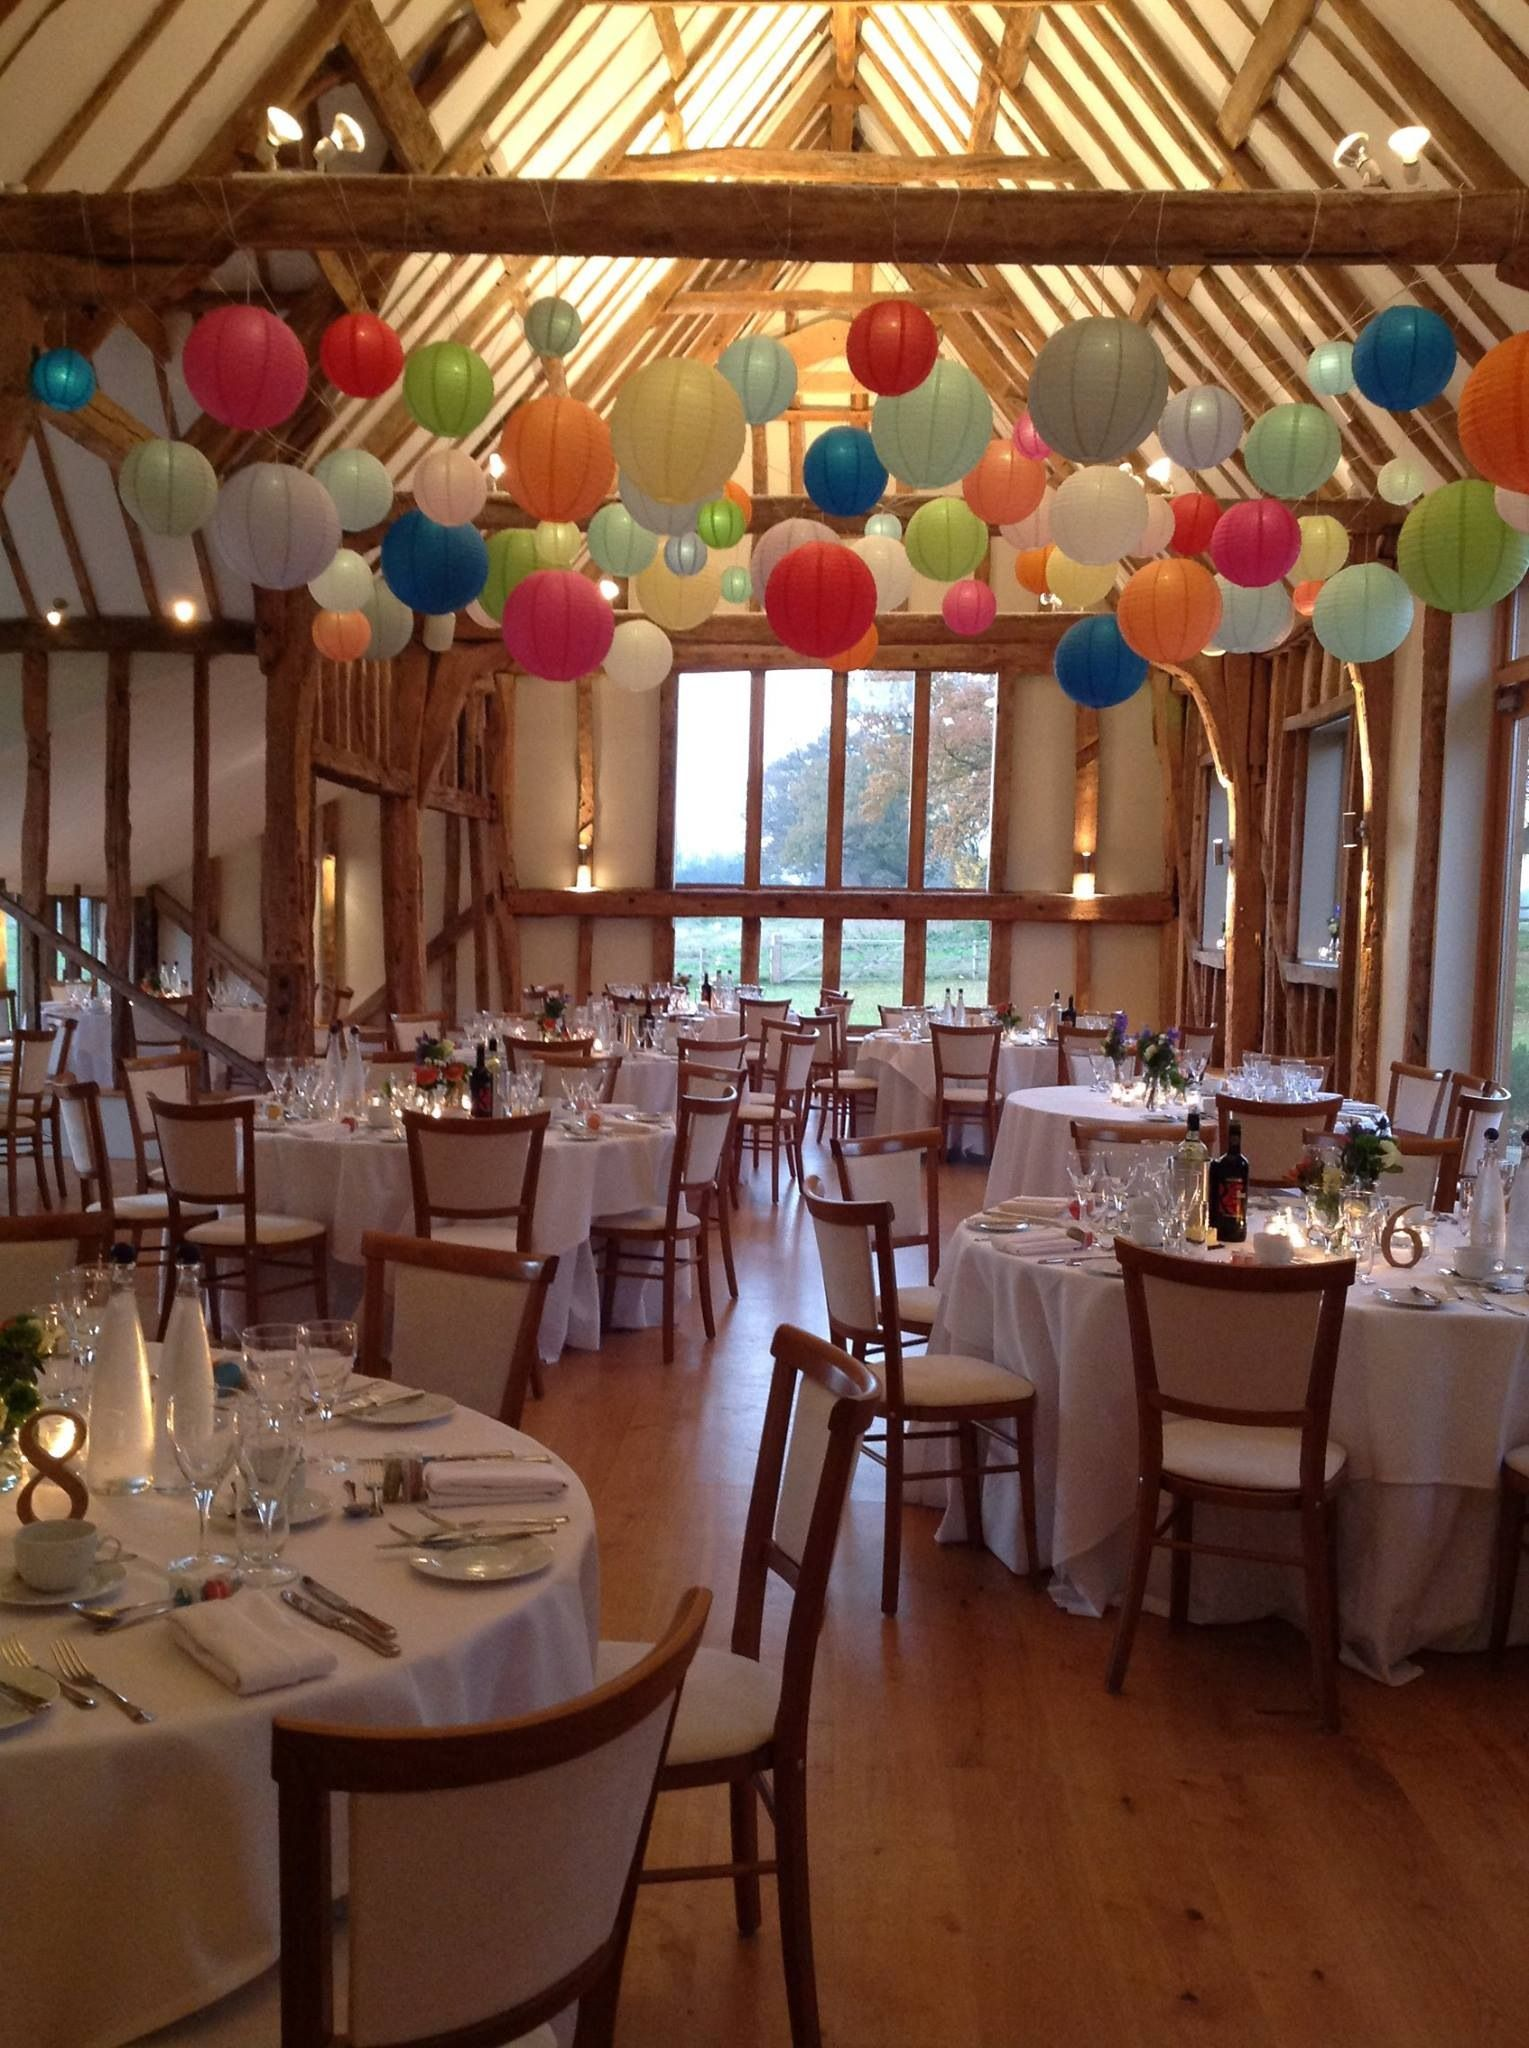 Brighten Up A Barn Venue With Our Funky Bright Coloured Lanterns Keep Table And Chair Dec Barn Wedding Decorations Paper Lanterns Candle Wedding Centerpieces